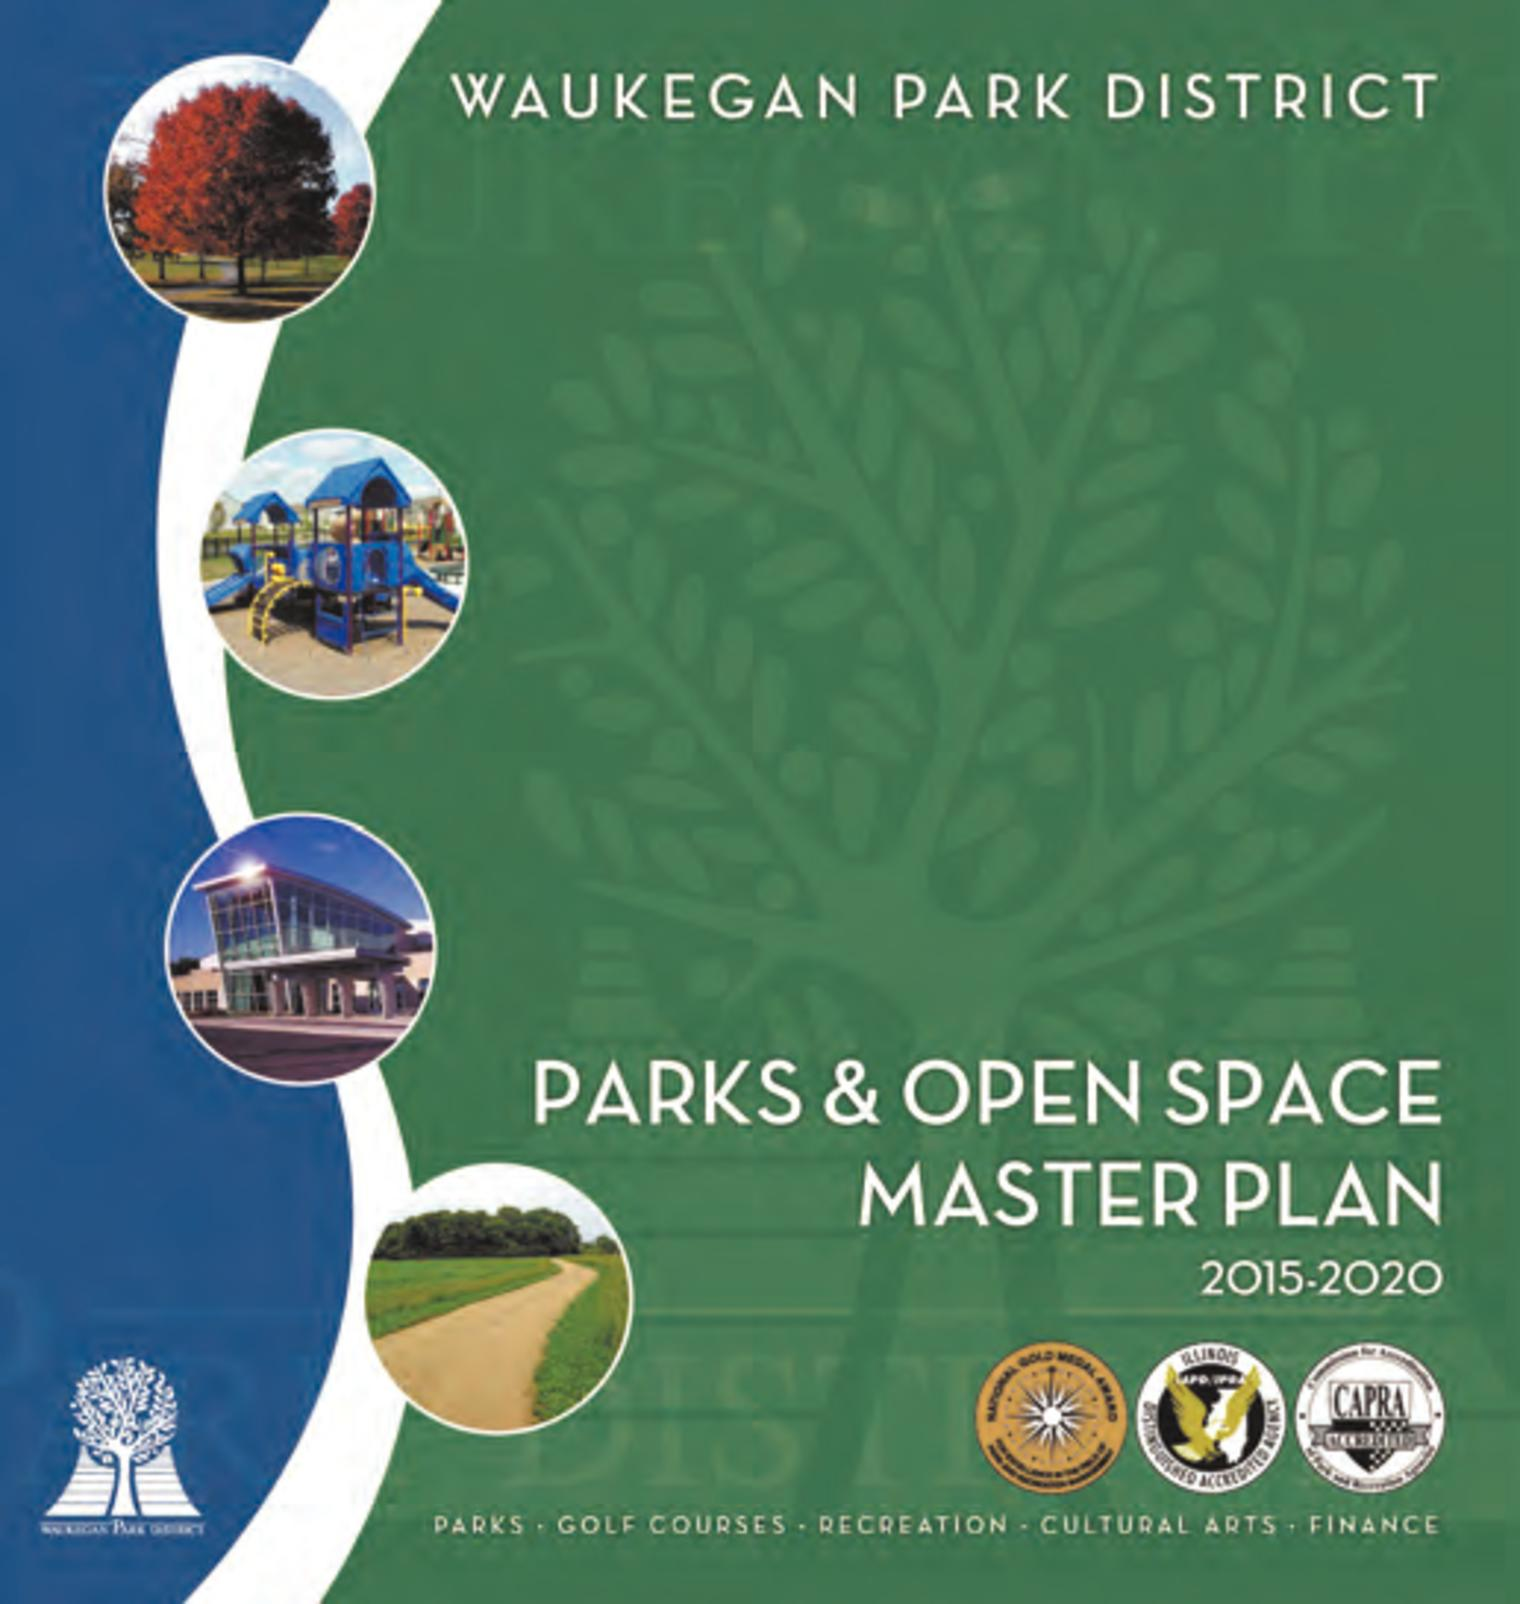 Calaméo - 2015-2020 Parks & Open Space Master Plan